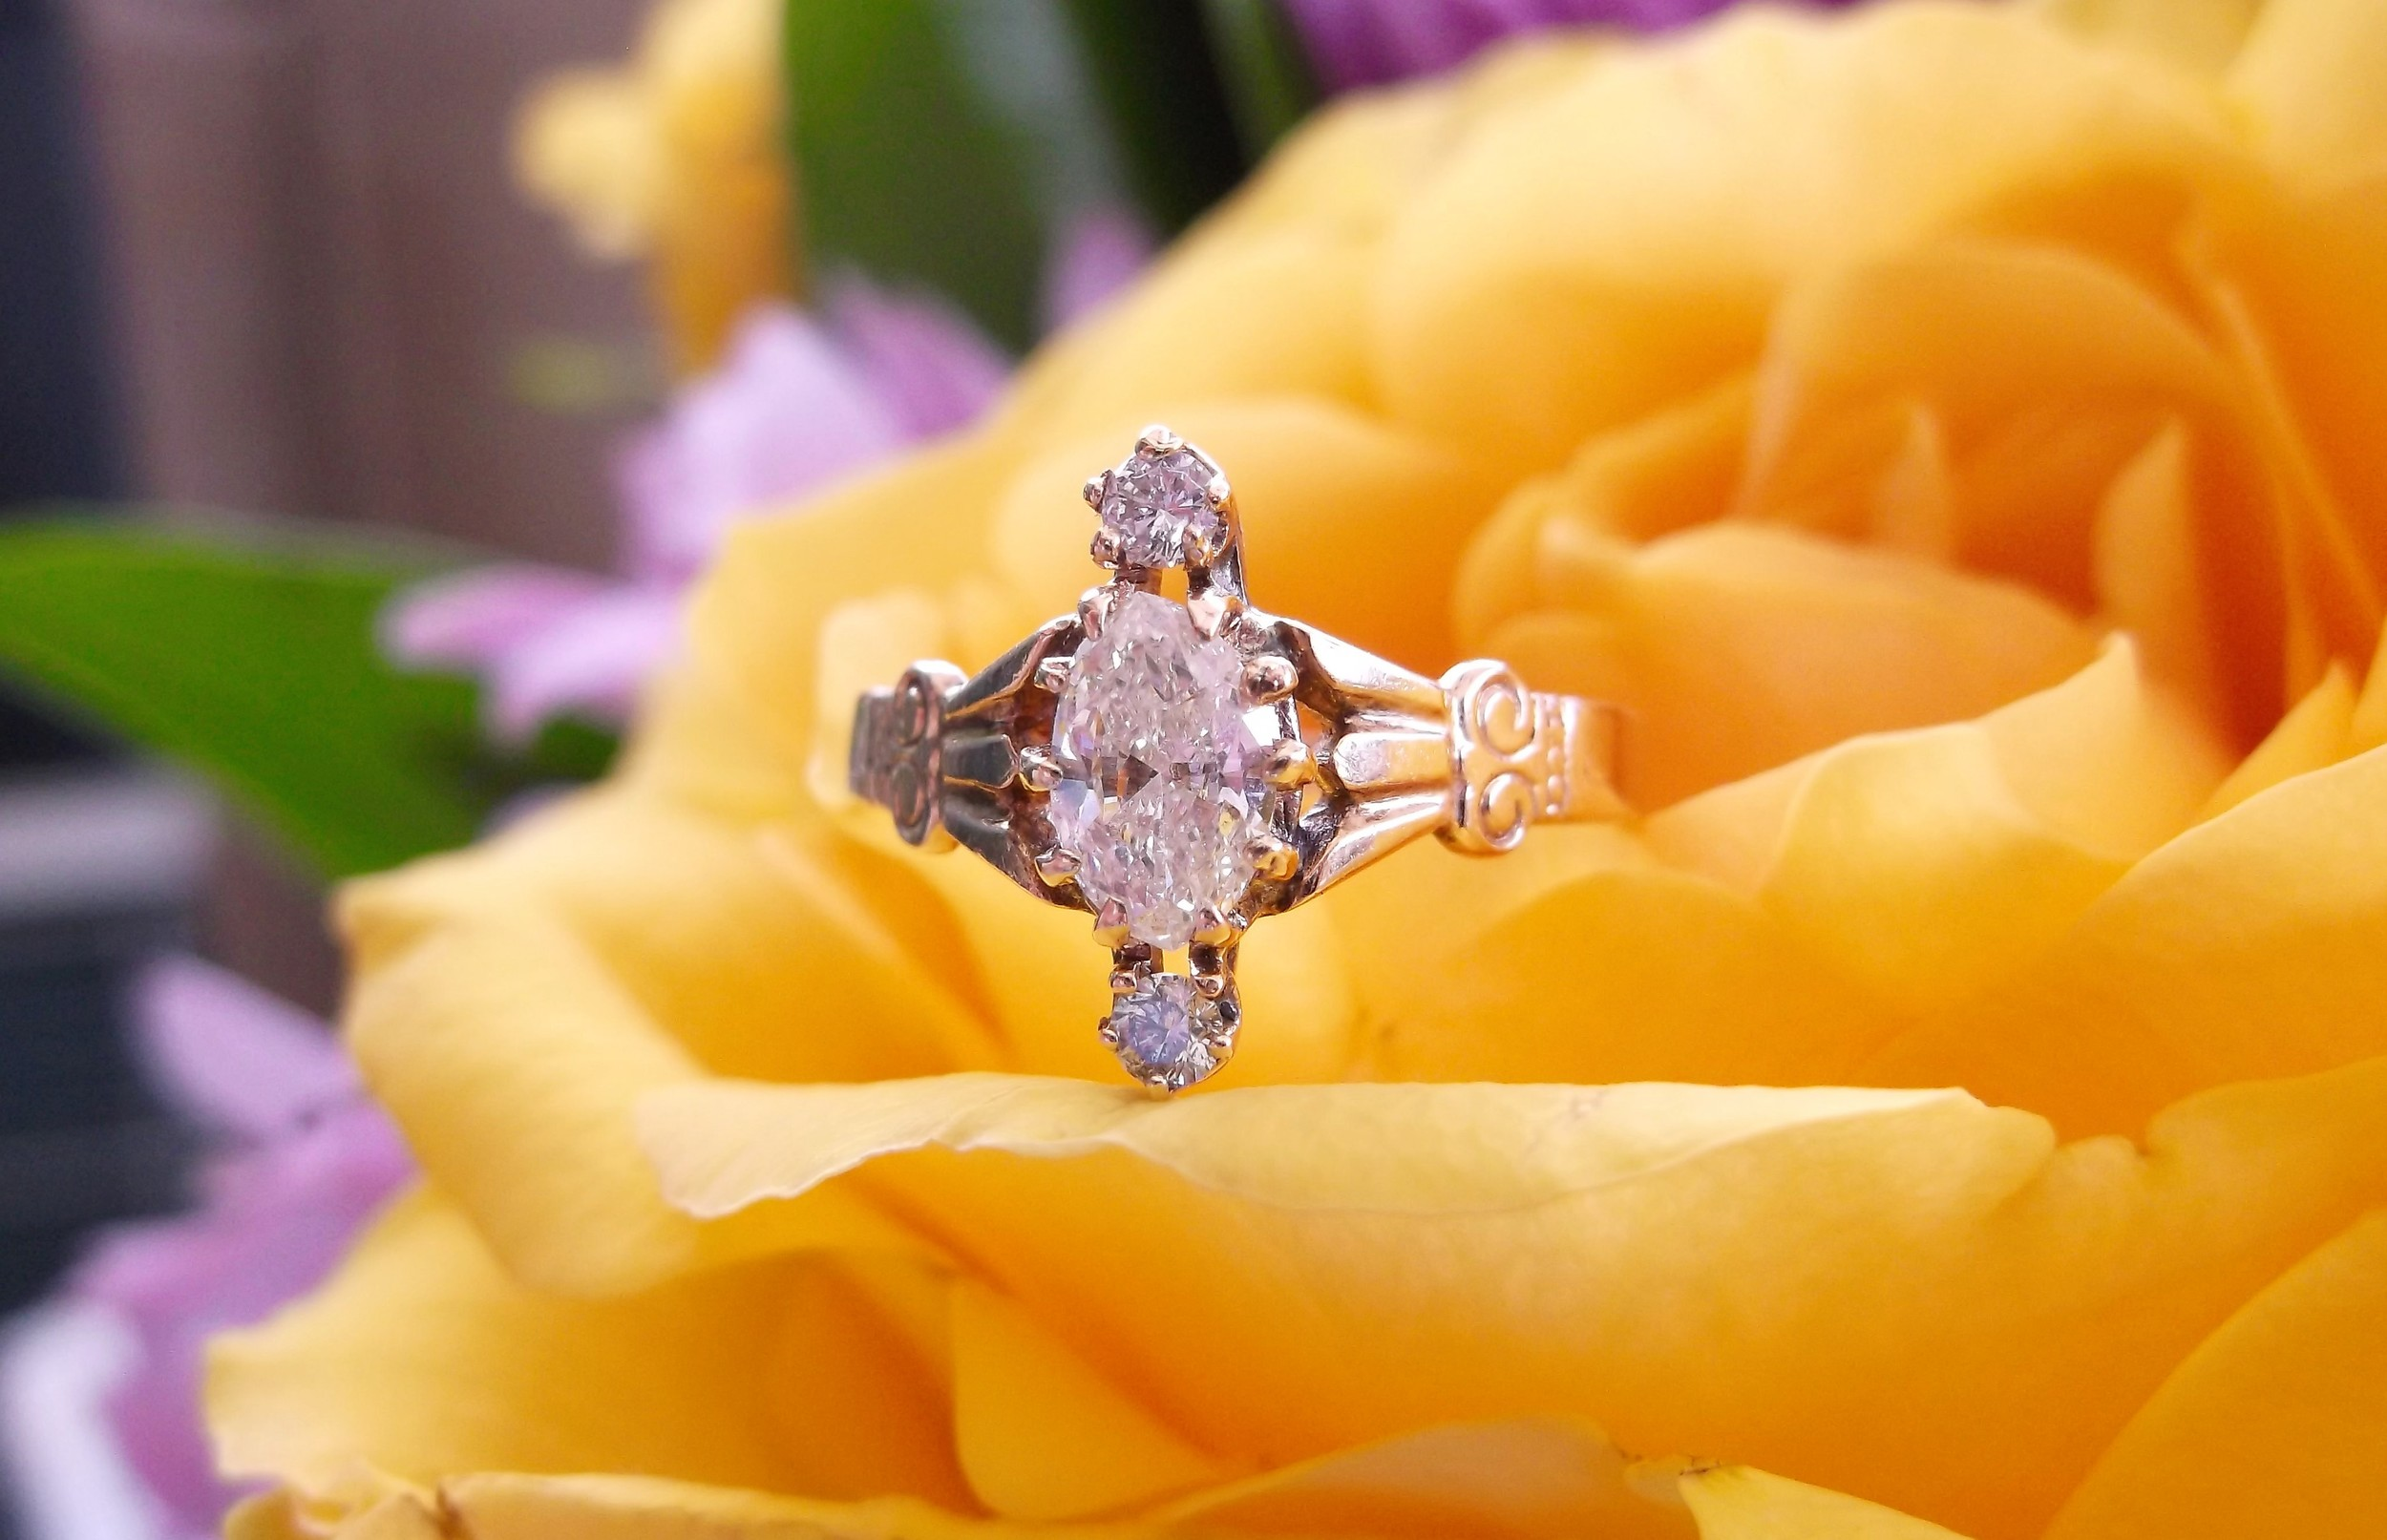 SOLD - Victorian era diamond ring set in yellow gold with a 0.42 carat marquis diamond.